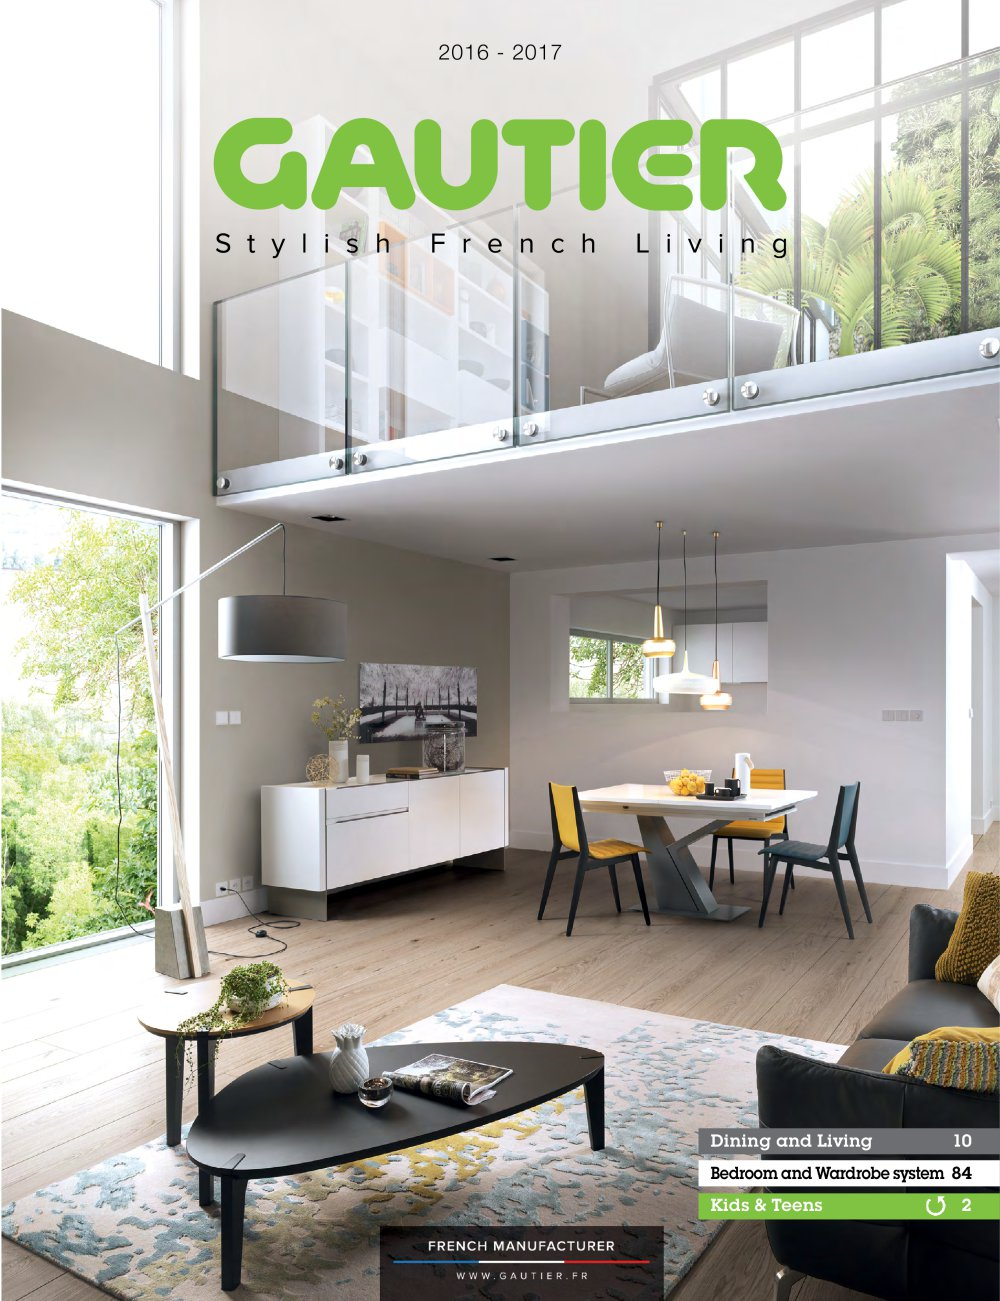 Gautier catalogue 2016 2017 Dining  Living and Adult Bedrooms   1   129  Pages. Gautier catalogue 2016 2017 Dining  Living and Adult Bedrooms